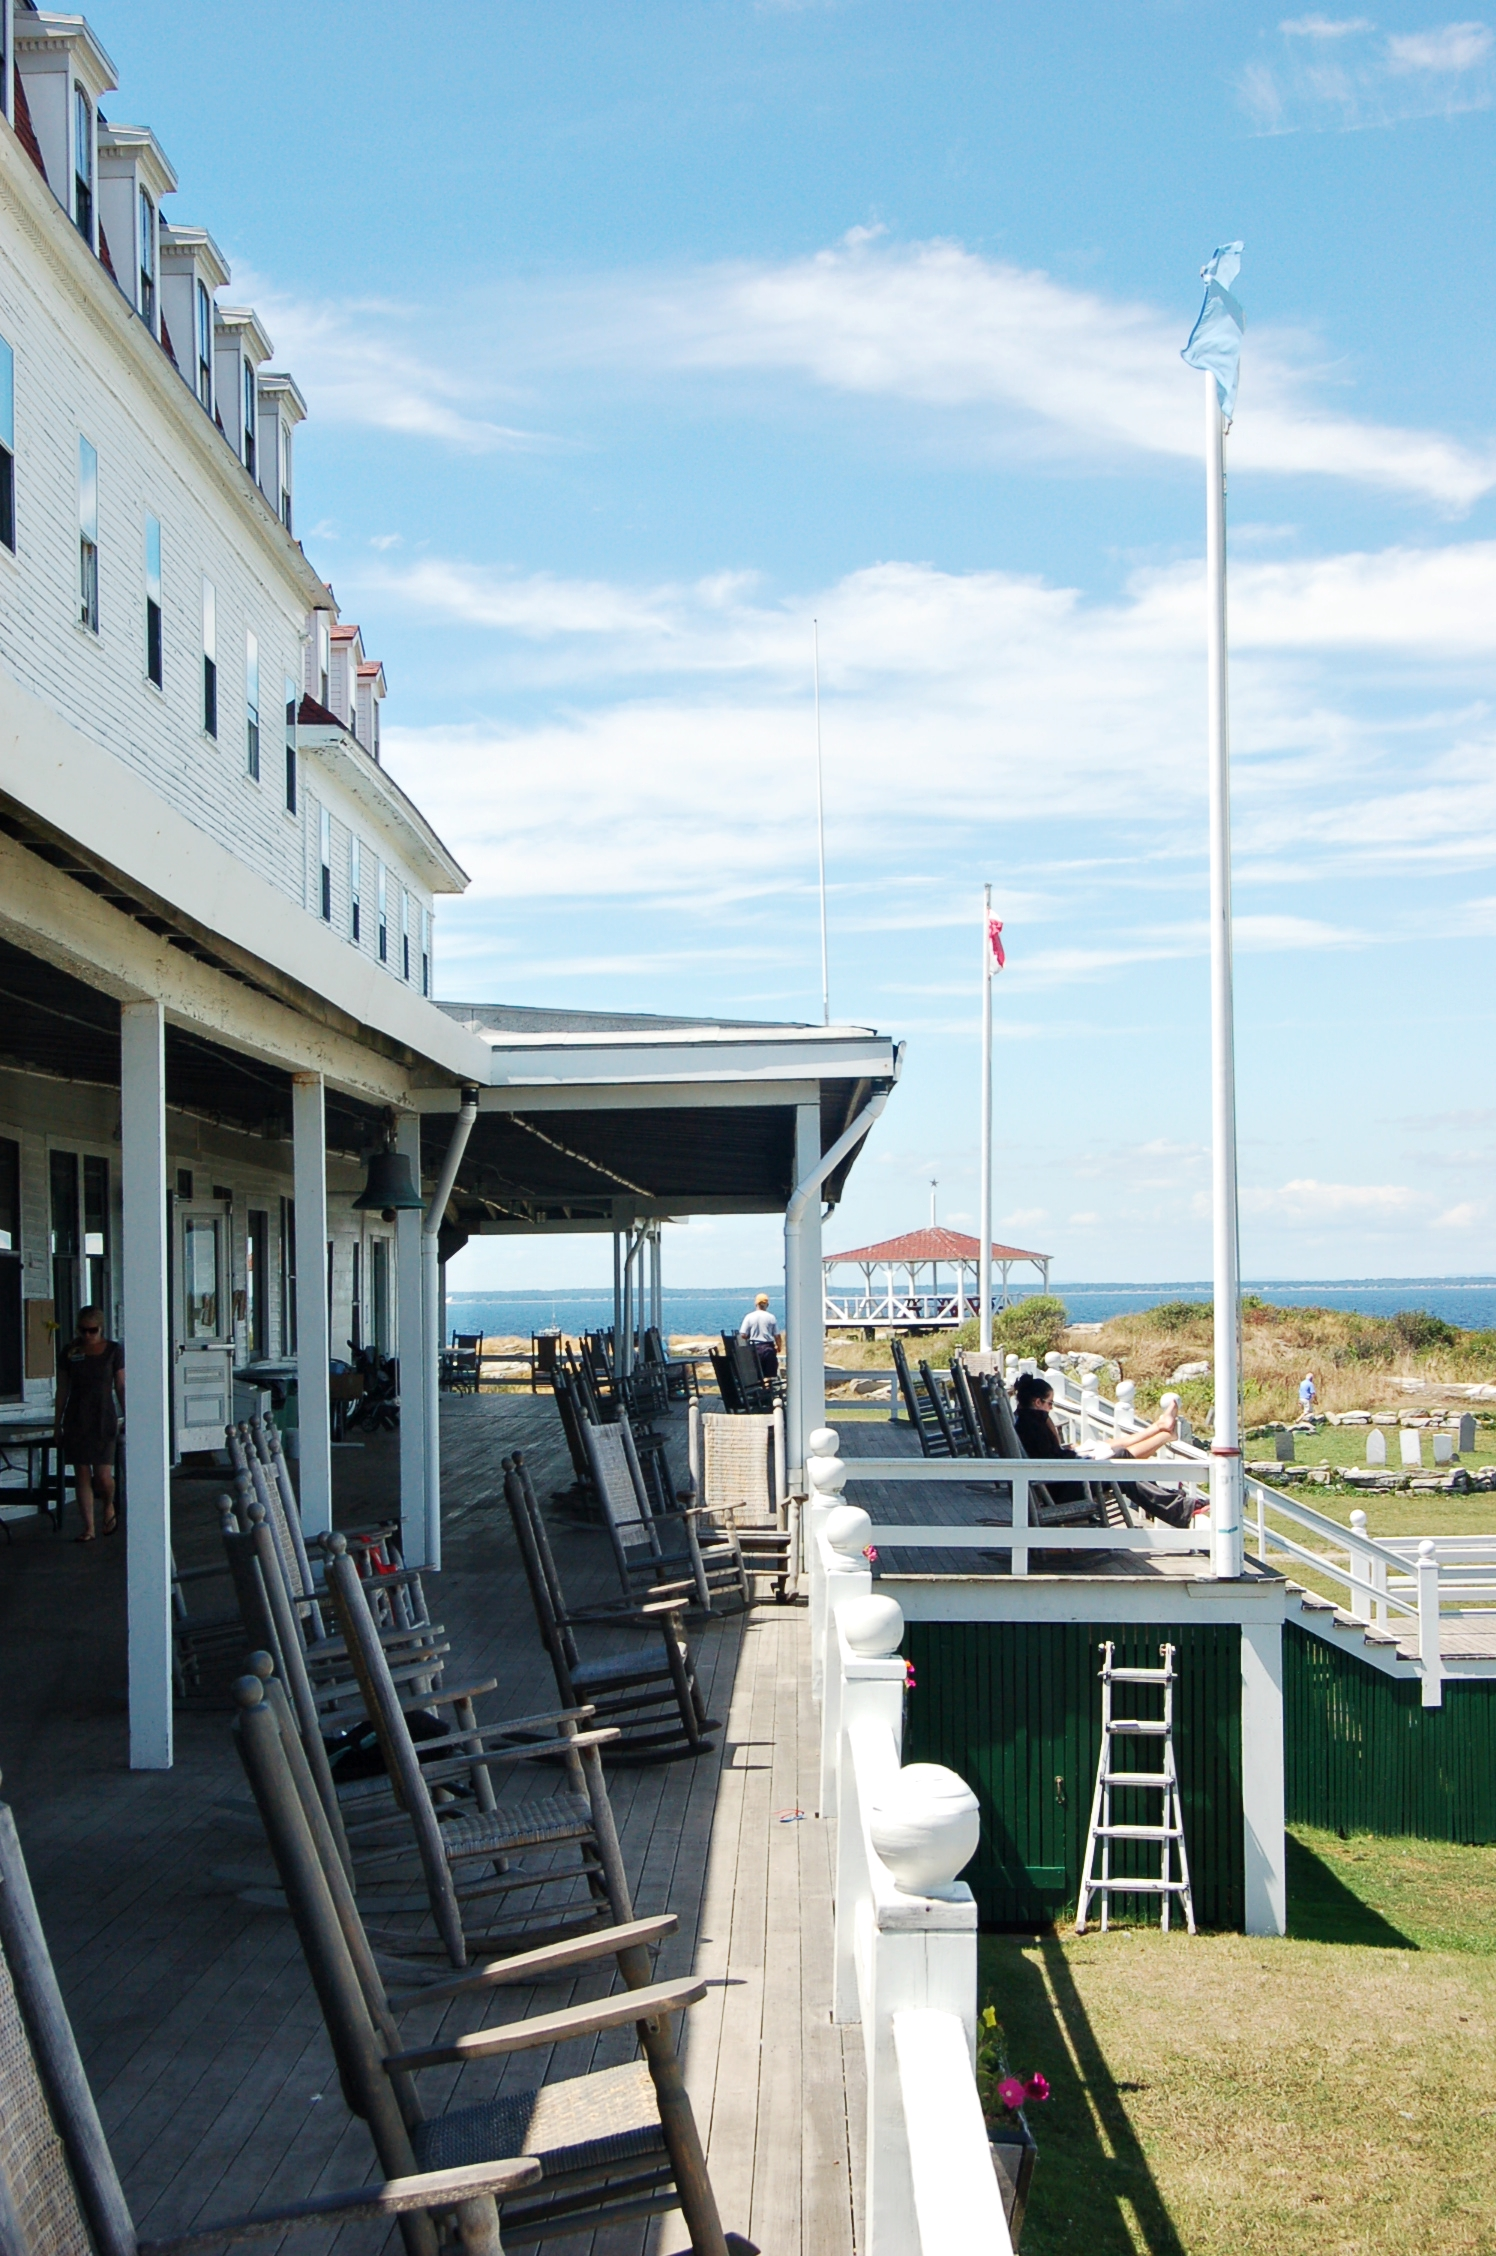 The famous Oceanic Hotel porch.